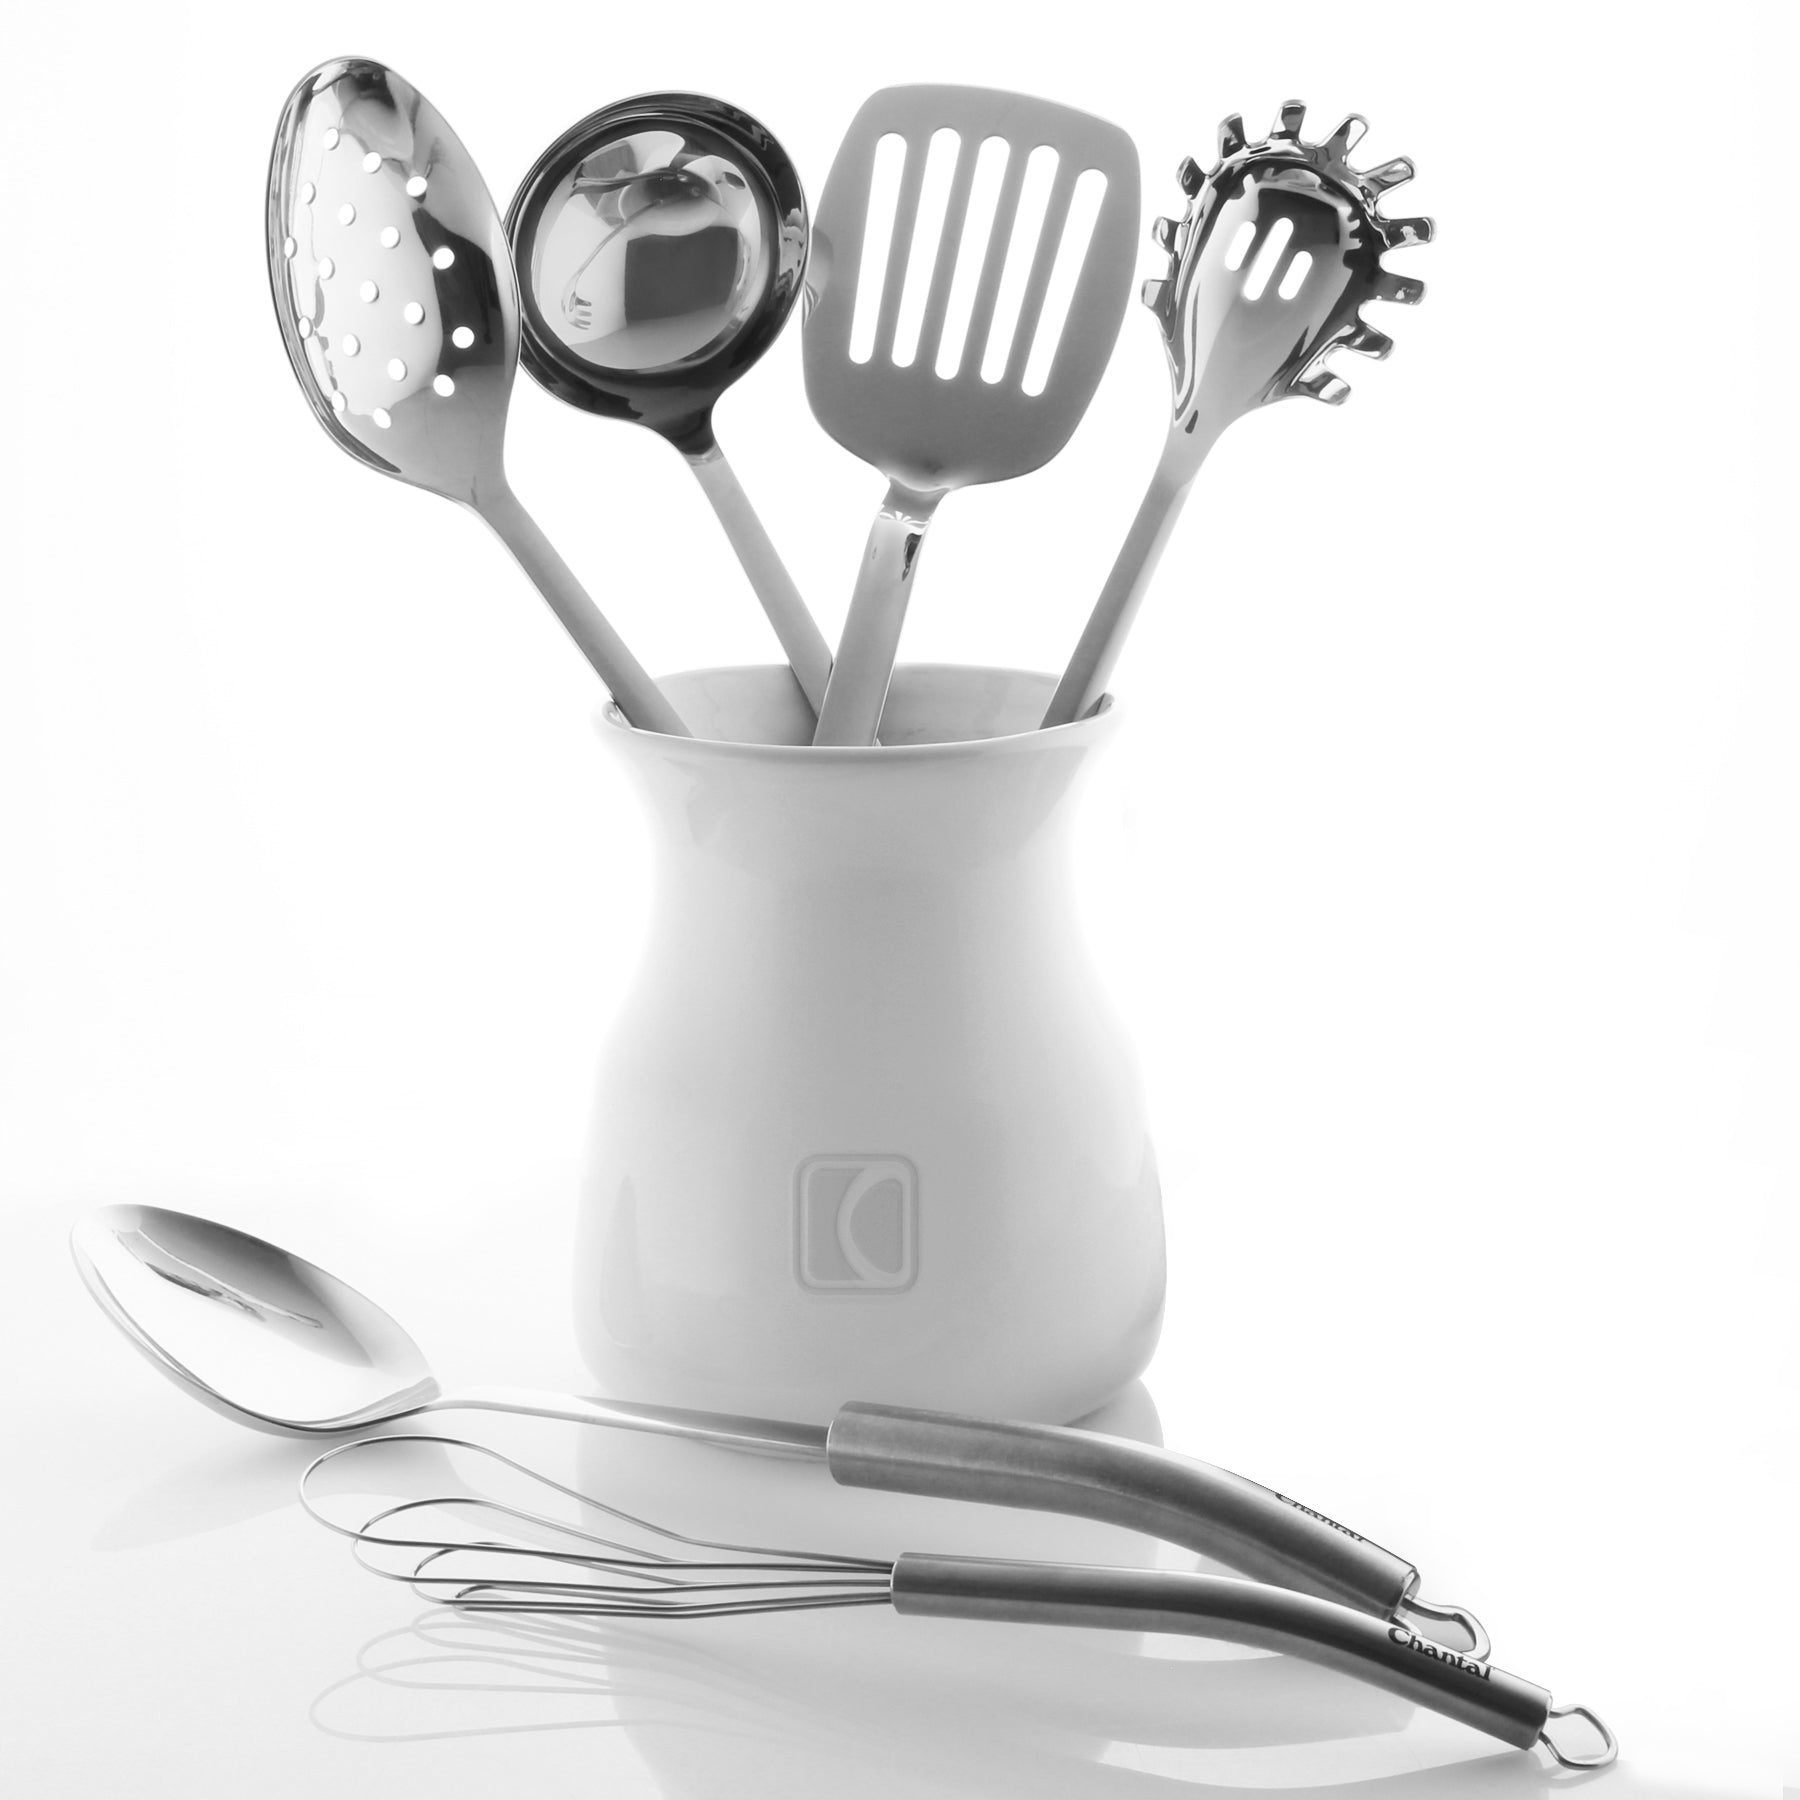 utensil crock and all 6 kitchen tools